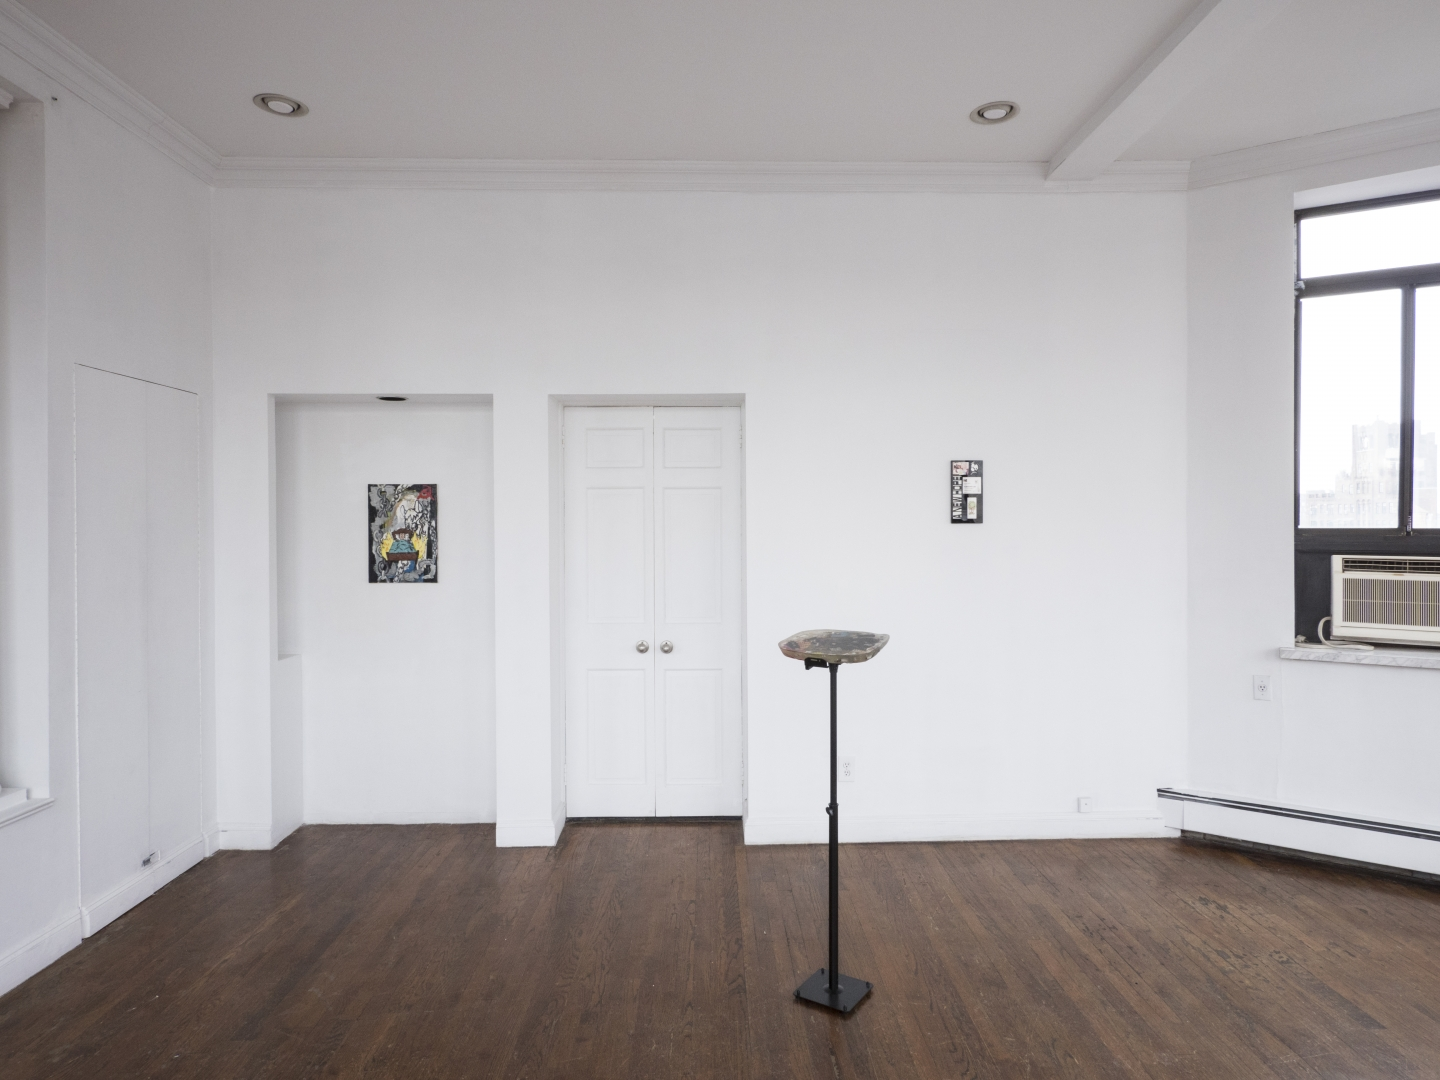 installation view, Alyssa Davis Gallery, New York